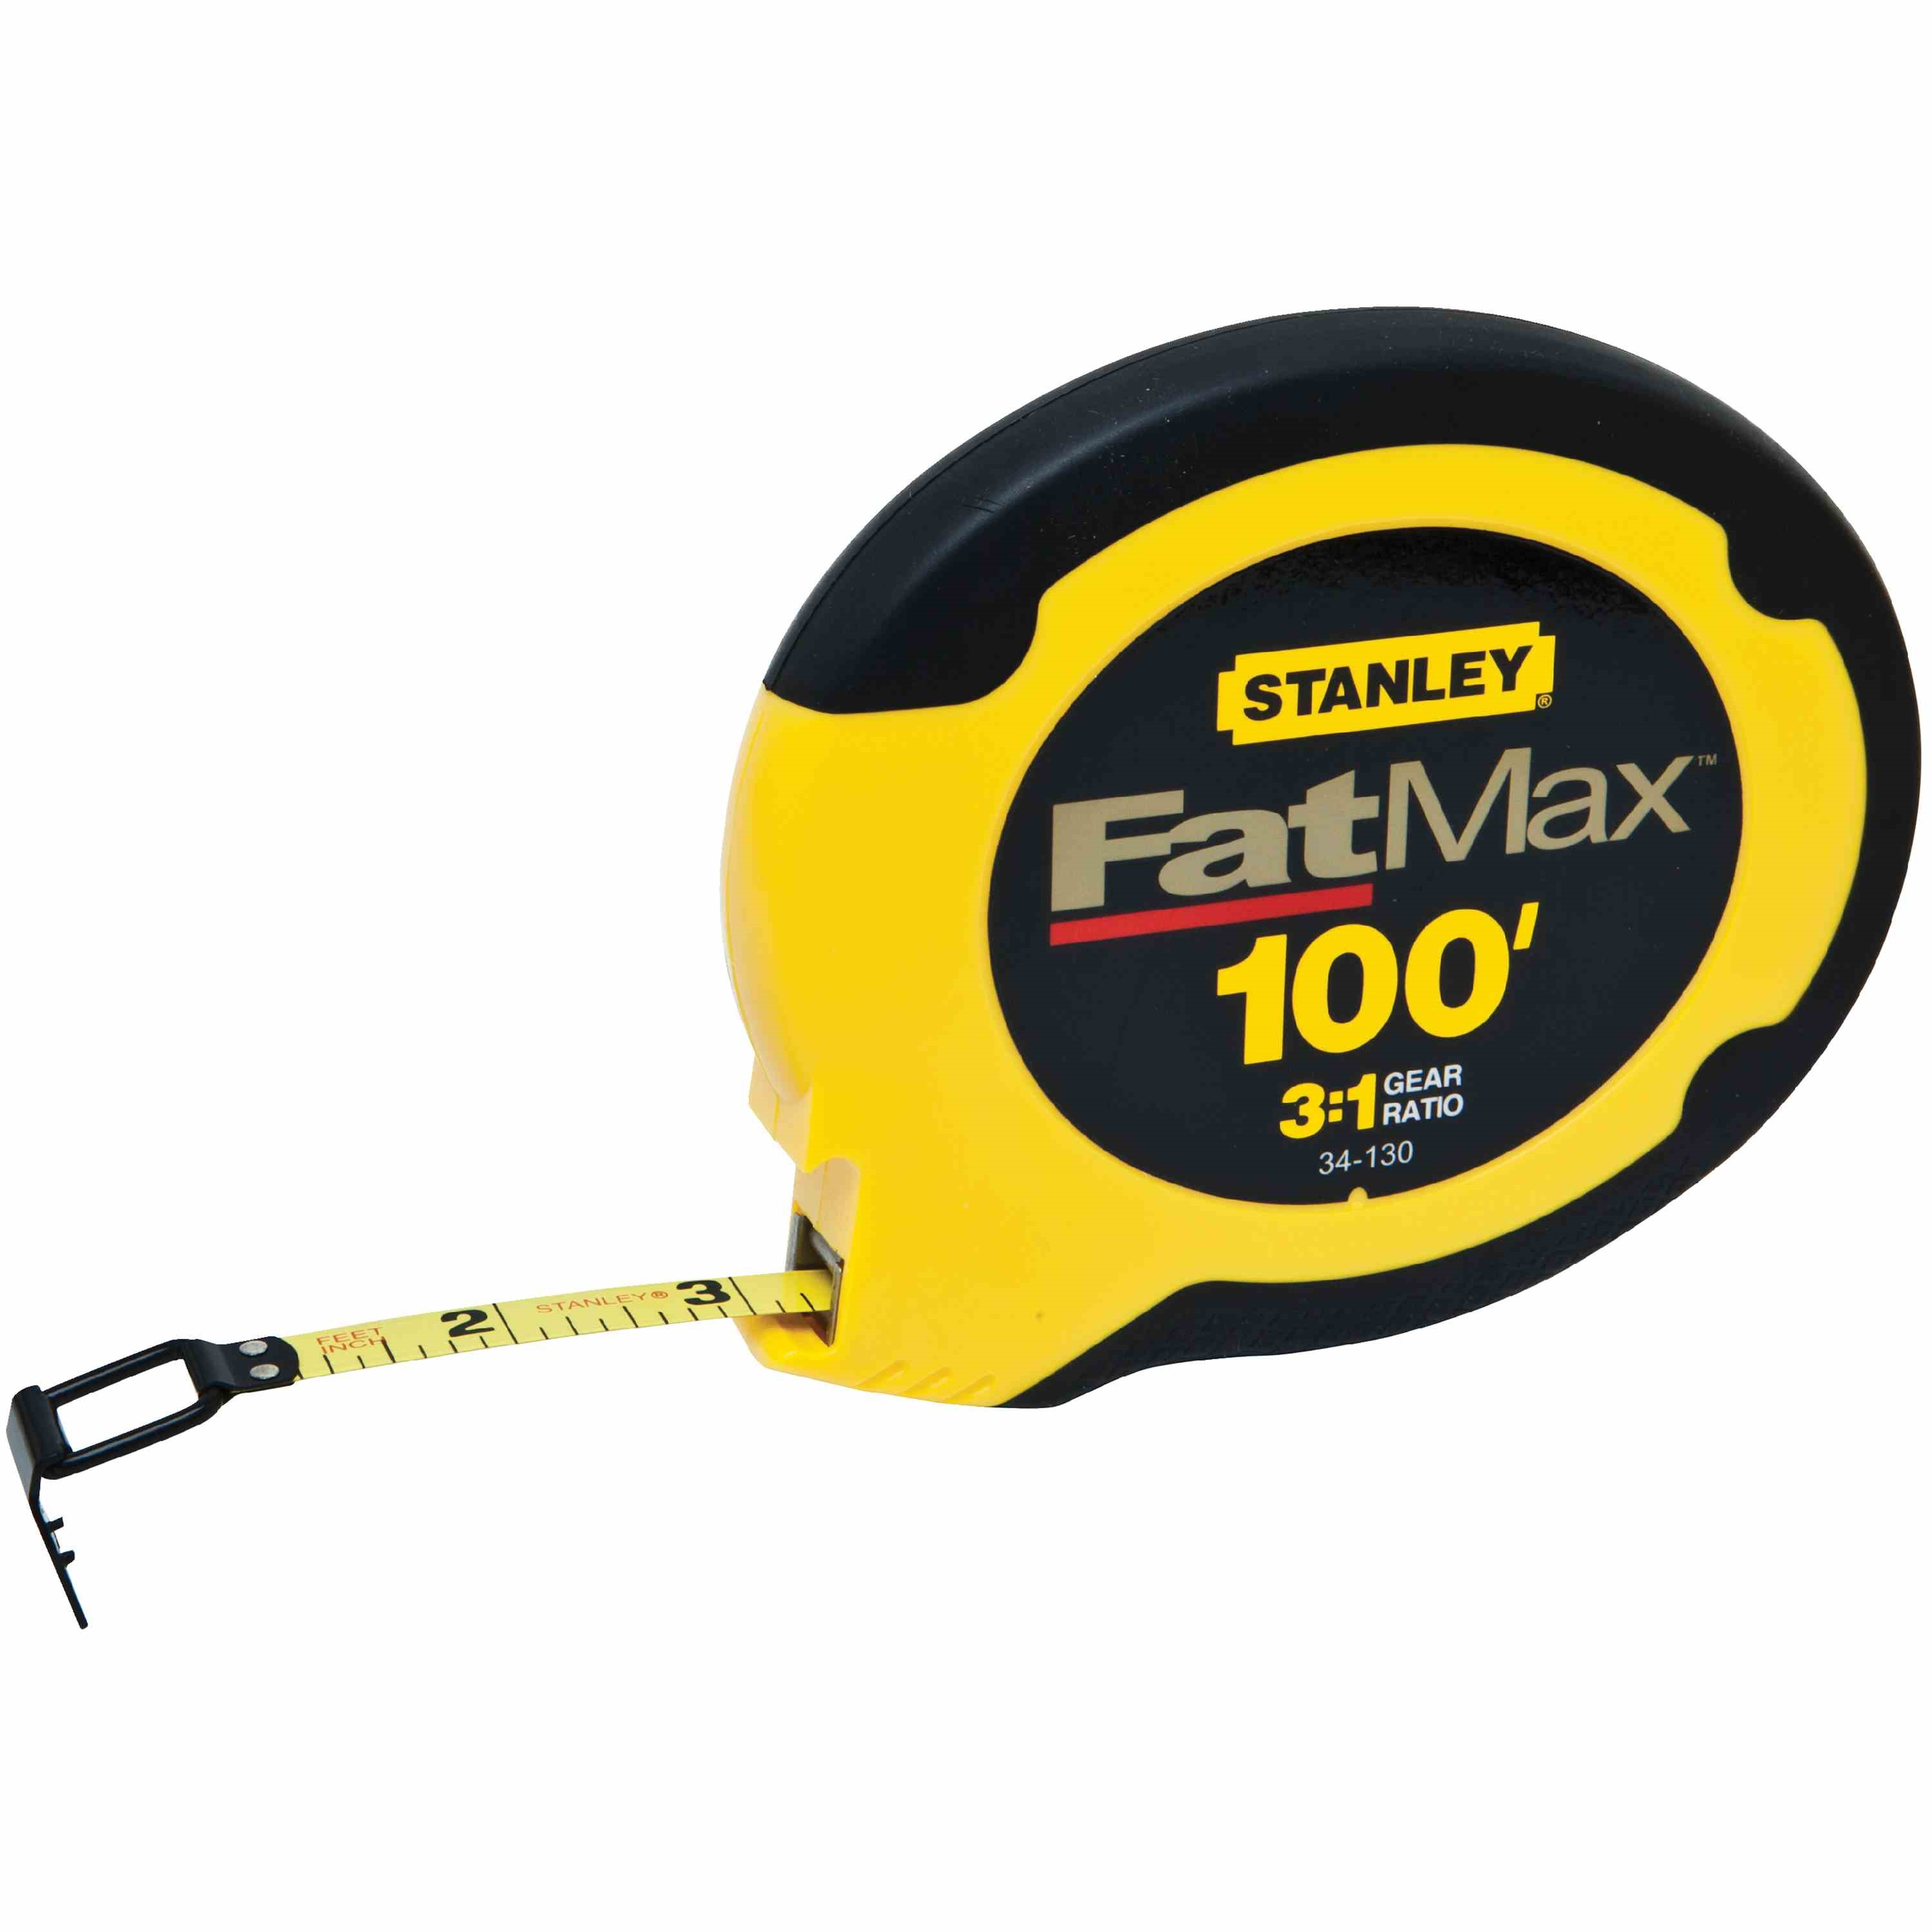 100 ft FATMAX Steel Long Tape